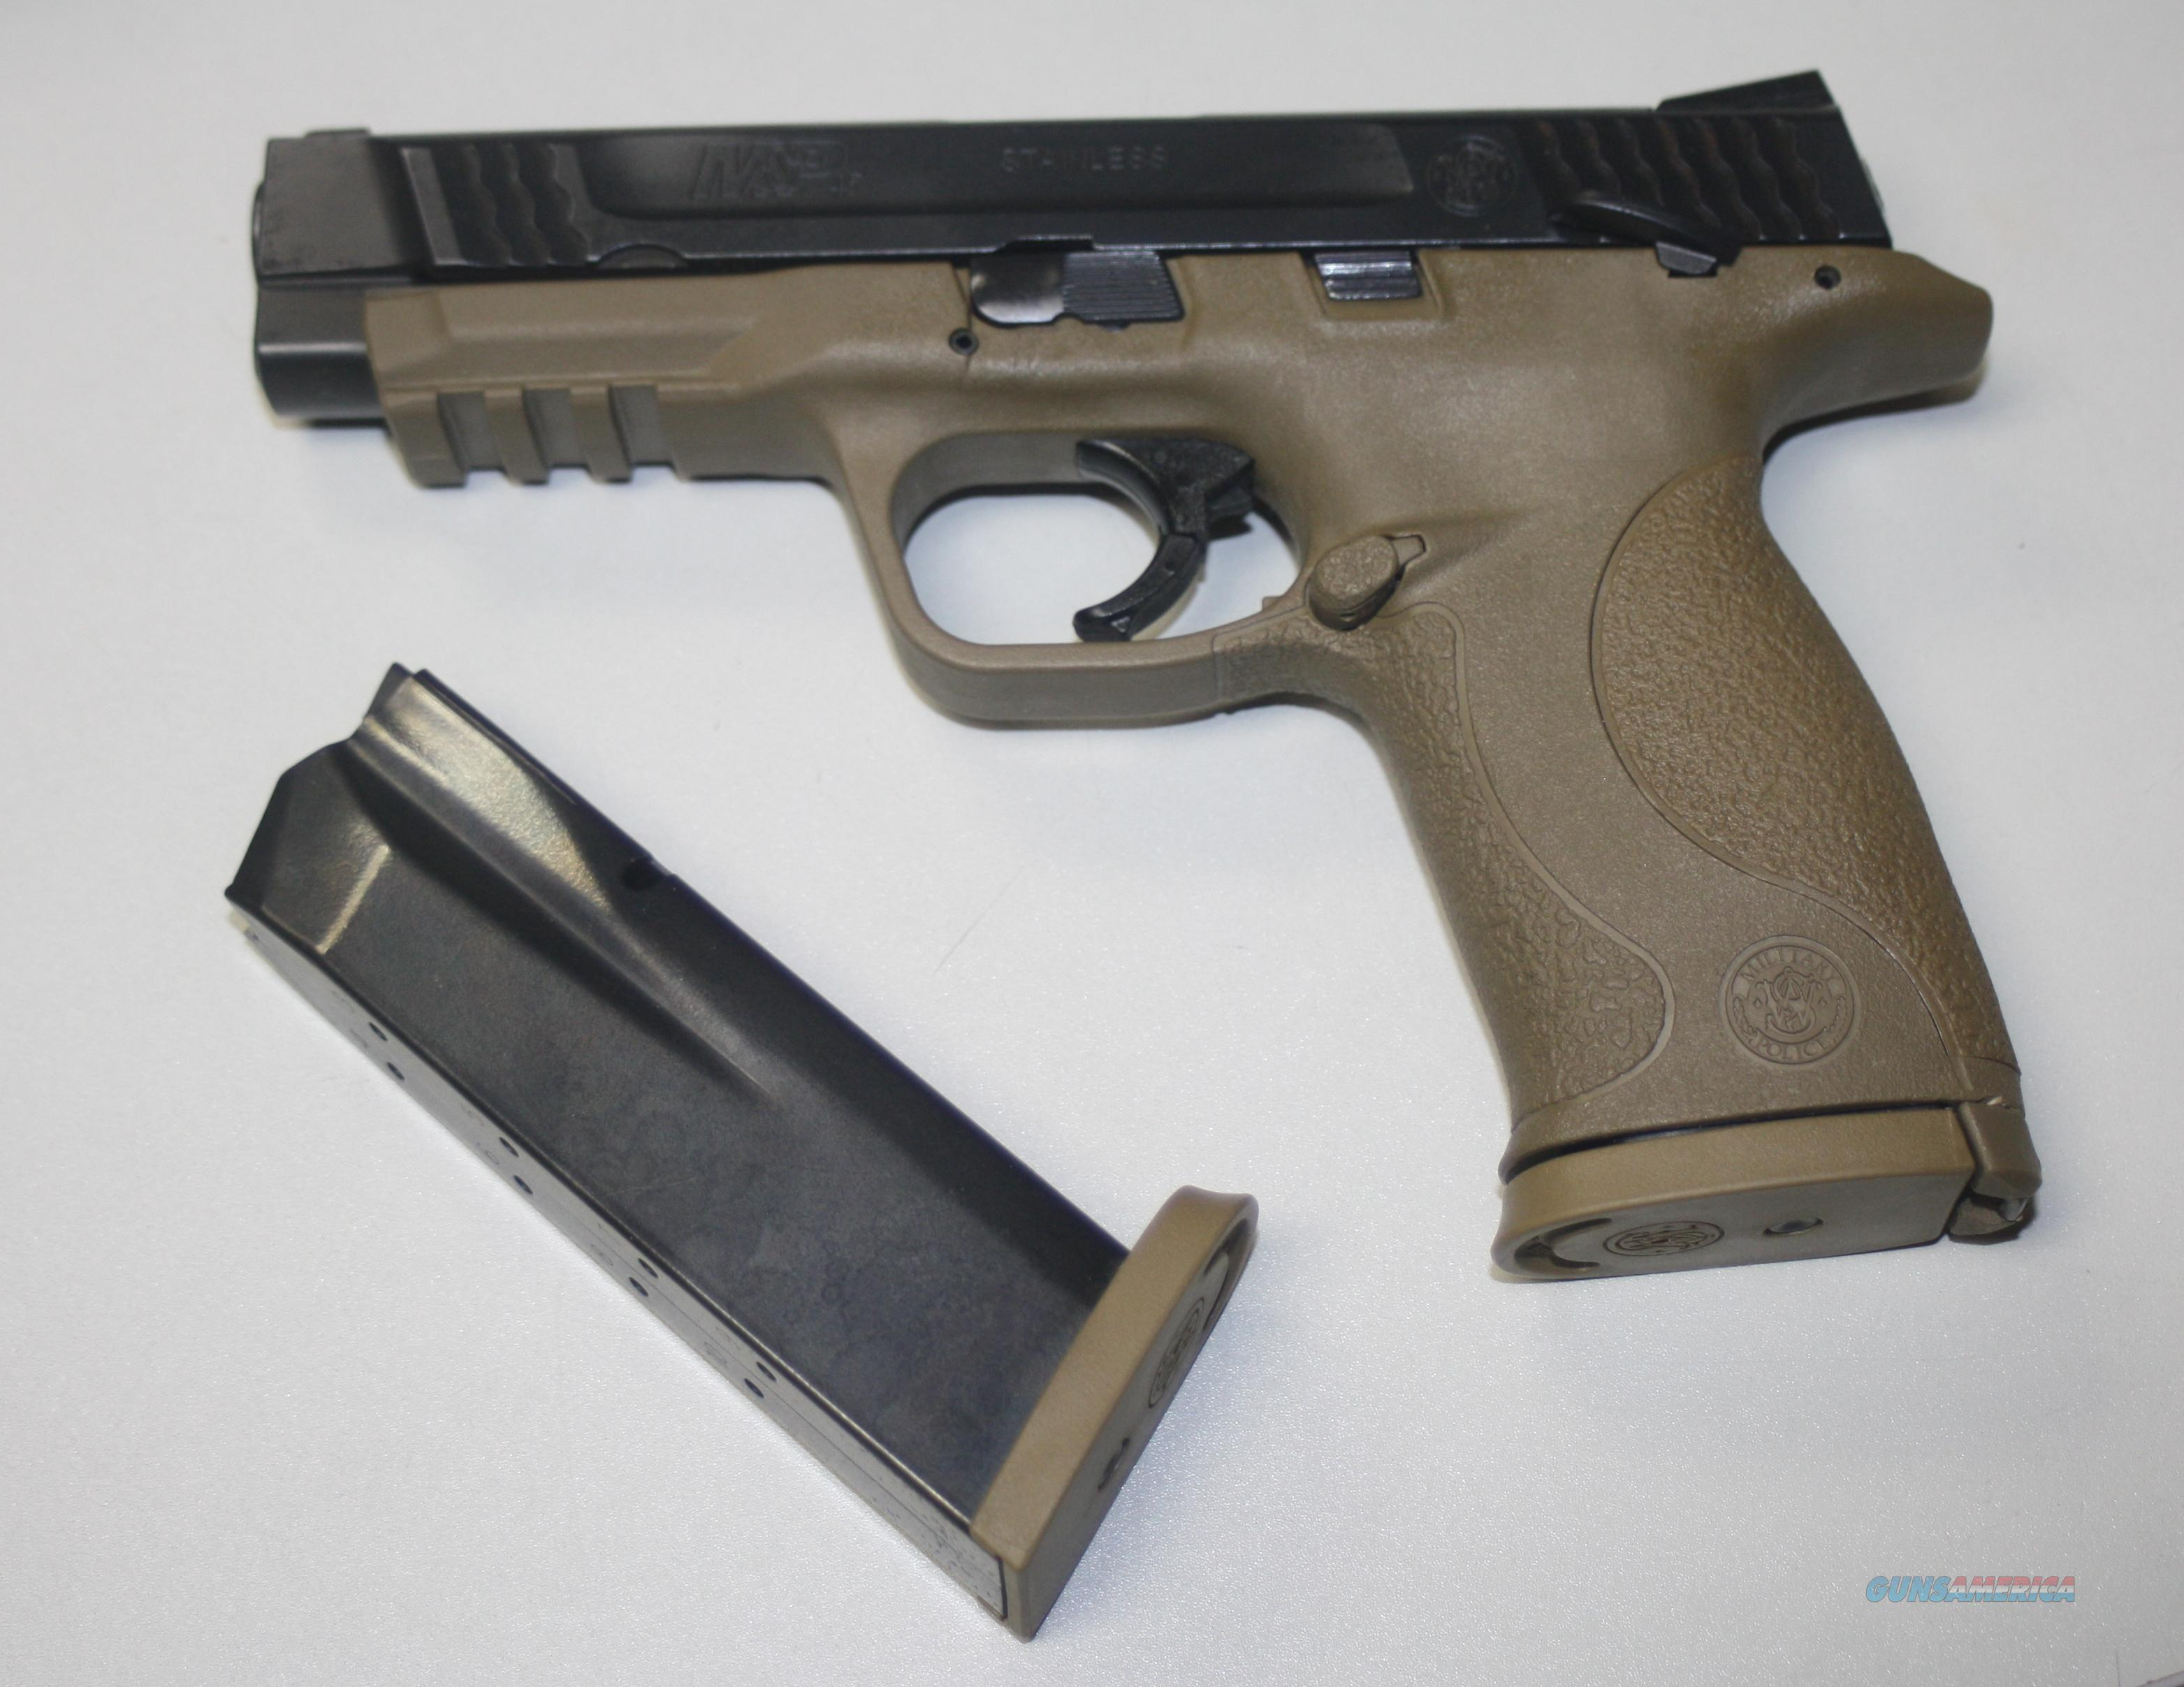 SMITH & WESSON M&P45ACP DARK EARTH BROWN  Guns > Pistols > Smith & Wesson Pistols - Autos > Polymer Frame